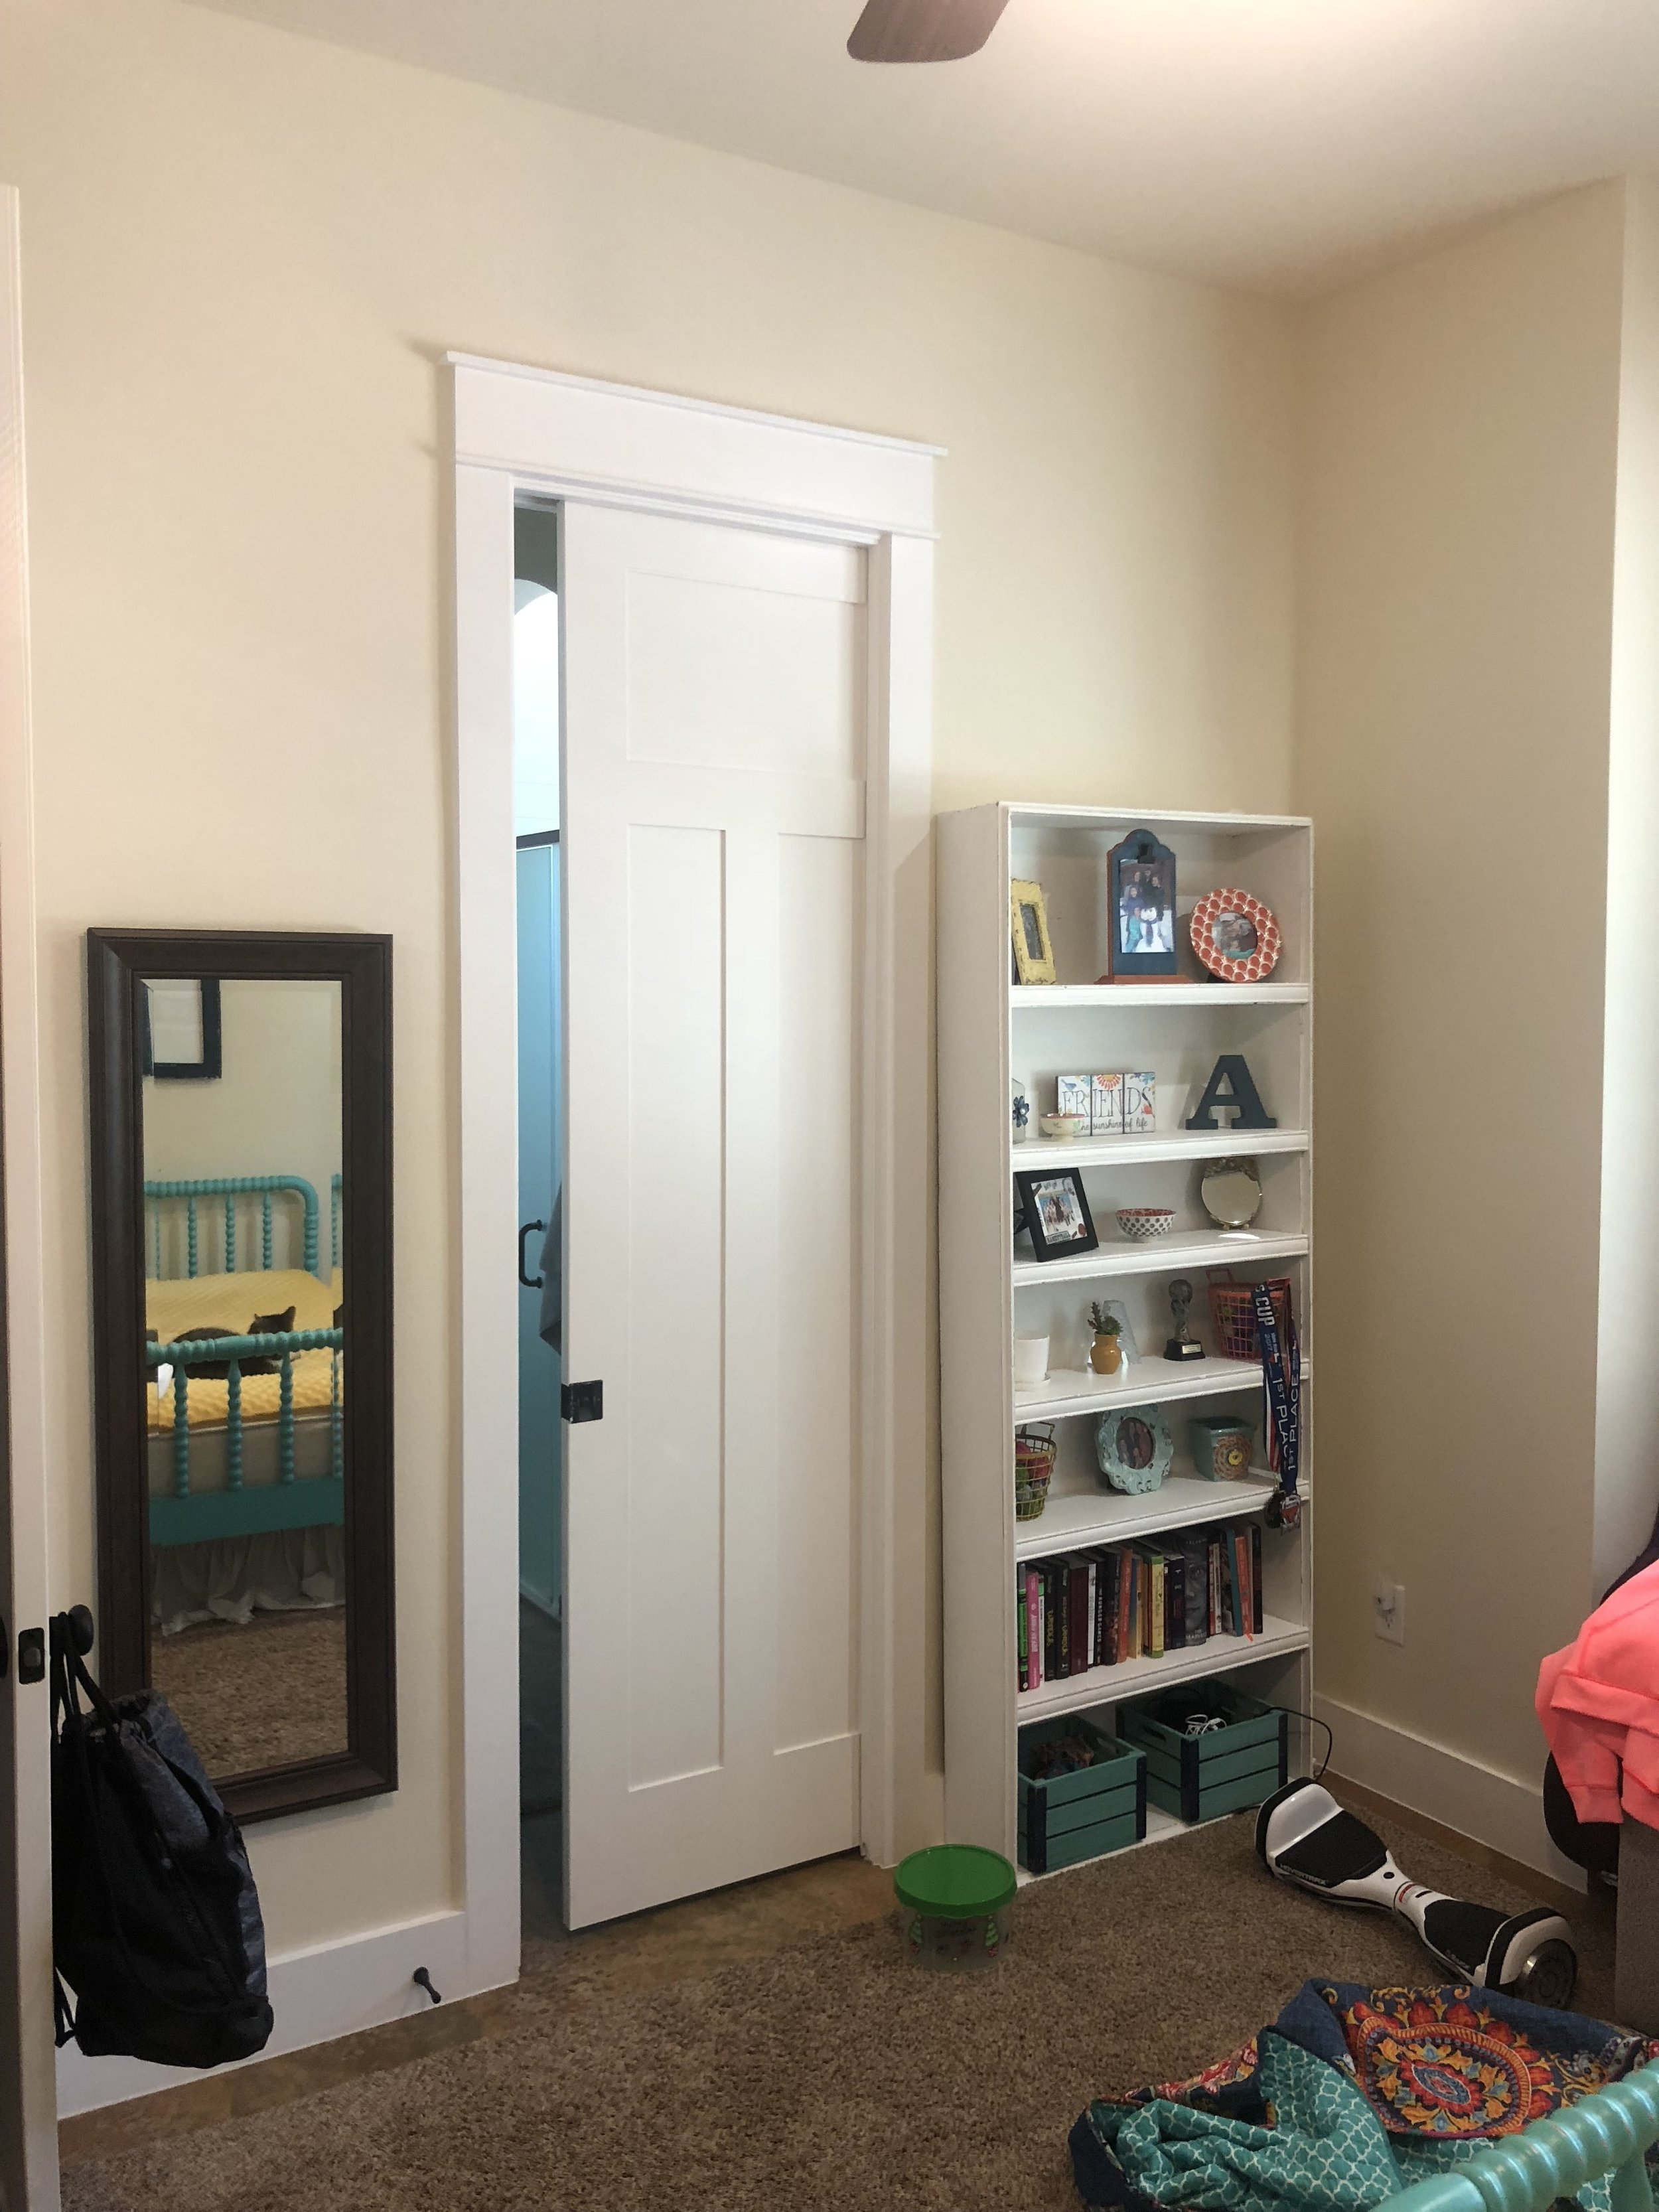 Love-Ding-Blog-Project-Update-Spruce-Kit-Before-Picture-Allisons-Teen-Room-Spruce-2.JPG